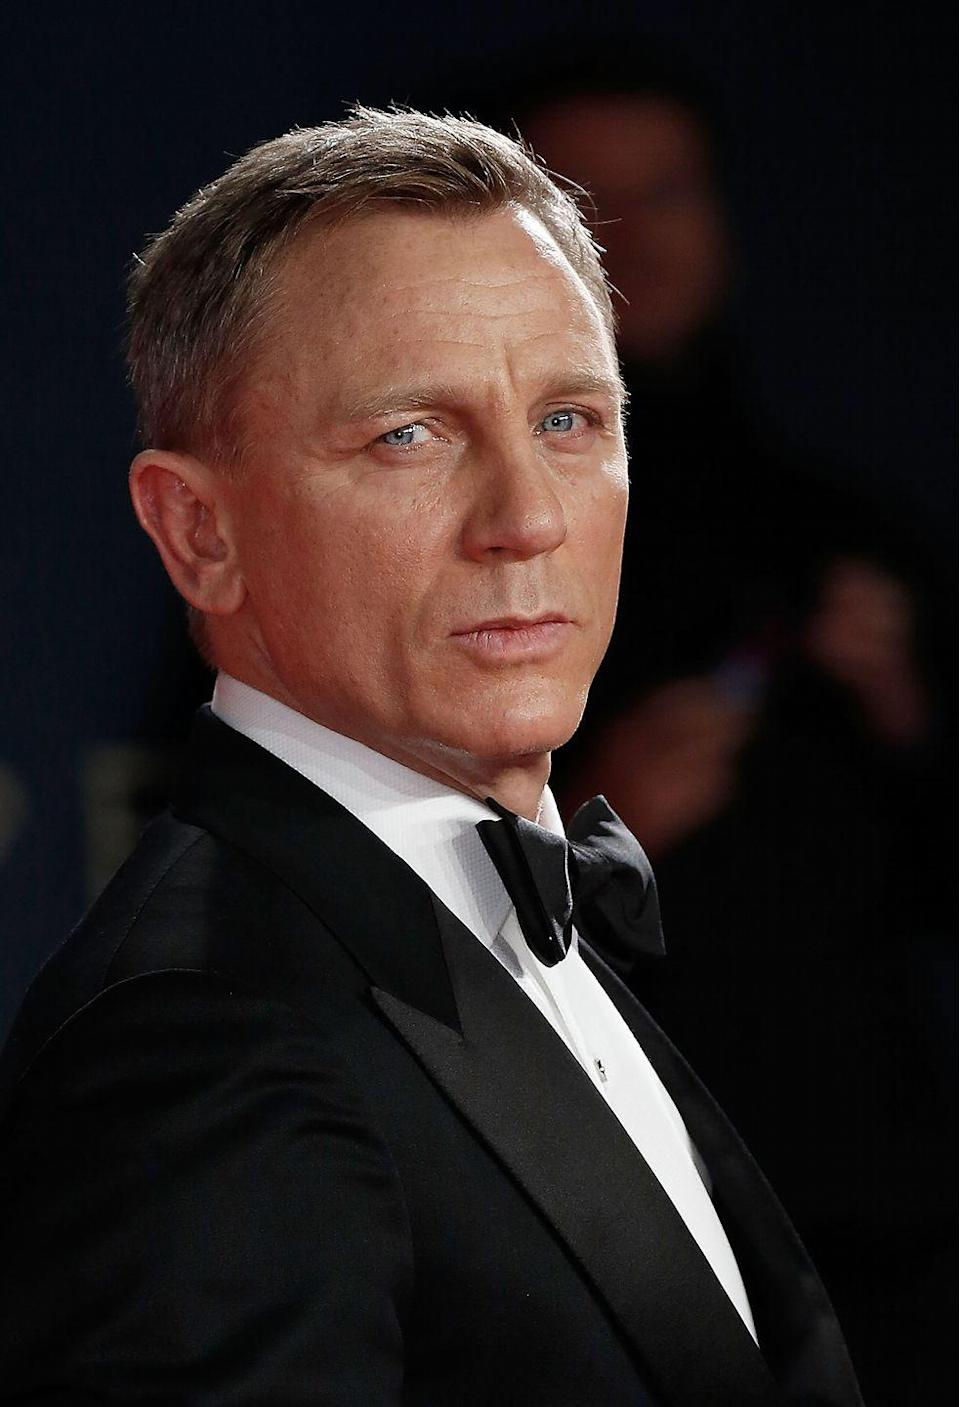 """<p>Craig is no doubt tired of the Bond series. When asked if he could imagine doing another Bond movie in 2015, Craig told <em><a href=""""https://www.timeout.com/london/film/daniel-craig-interview-my-advice-to-the-next-james-bond-dont-be-shit"""" rel=""""nofollow noopener"""" target=""""_blank"""" data-ylk=""""slk:Time Out"""" class=""""link rapid-noclick-resp"""">Time Out</a></em>, """"Now? I'd rather break this glass and slash my wrists. No, not at the moment. Not at all. That's fine. I'm over it at the moment. We're done. All I want to do is move on.""""</p>"""